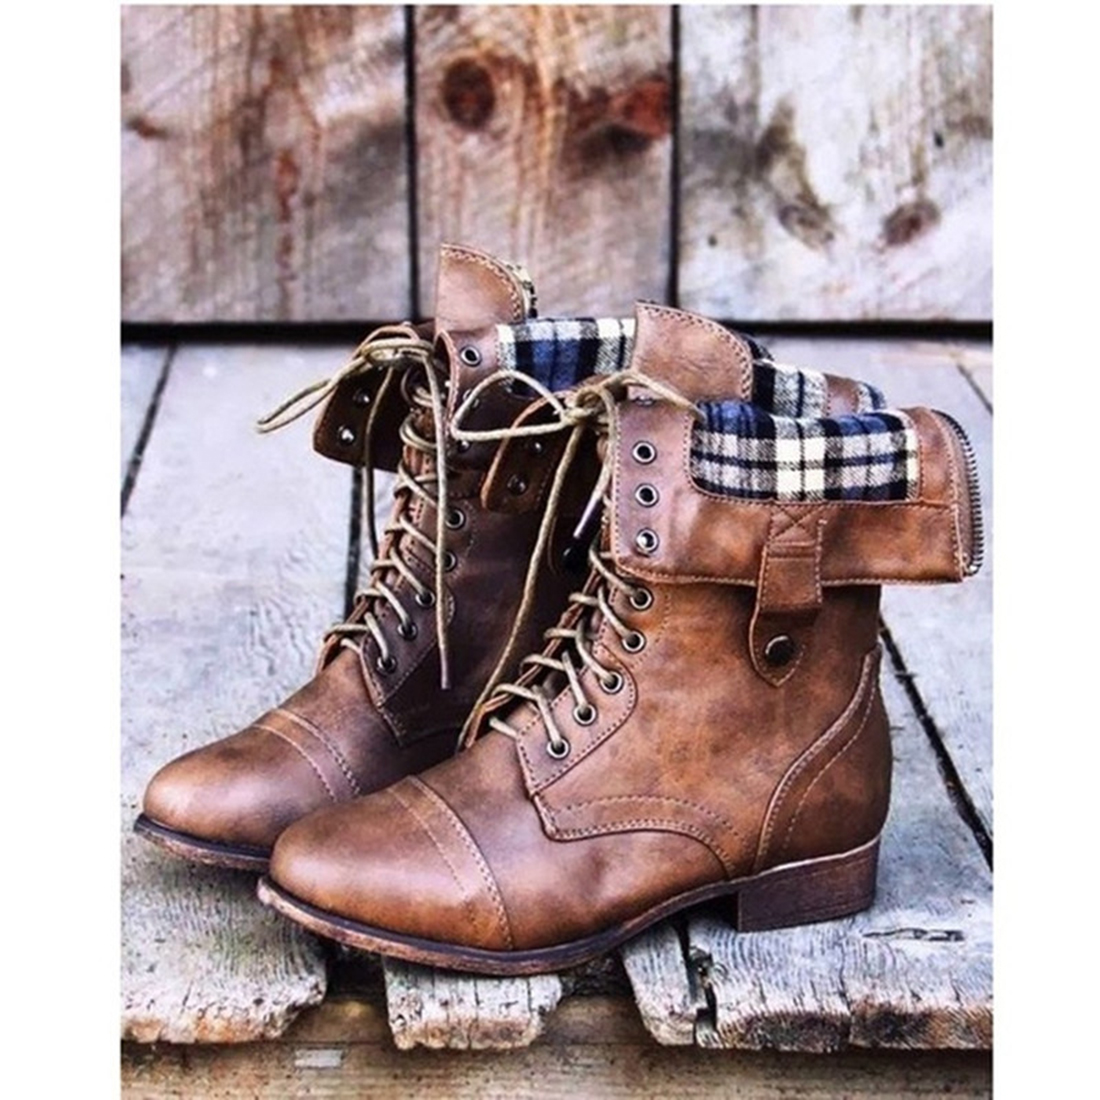 Women Boots 2017 Autumn winter women's shoes PU Leather Ankle Boots Cowboy Western Pointed Toe Punk Boots Ladies big size nikbea handmade genuine leather western boots cowboy large size women pointed toe boots 2016 autumn shoes fashion botas mujers